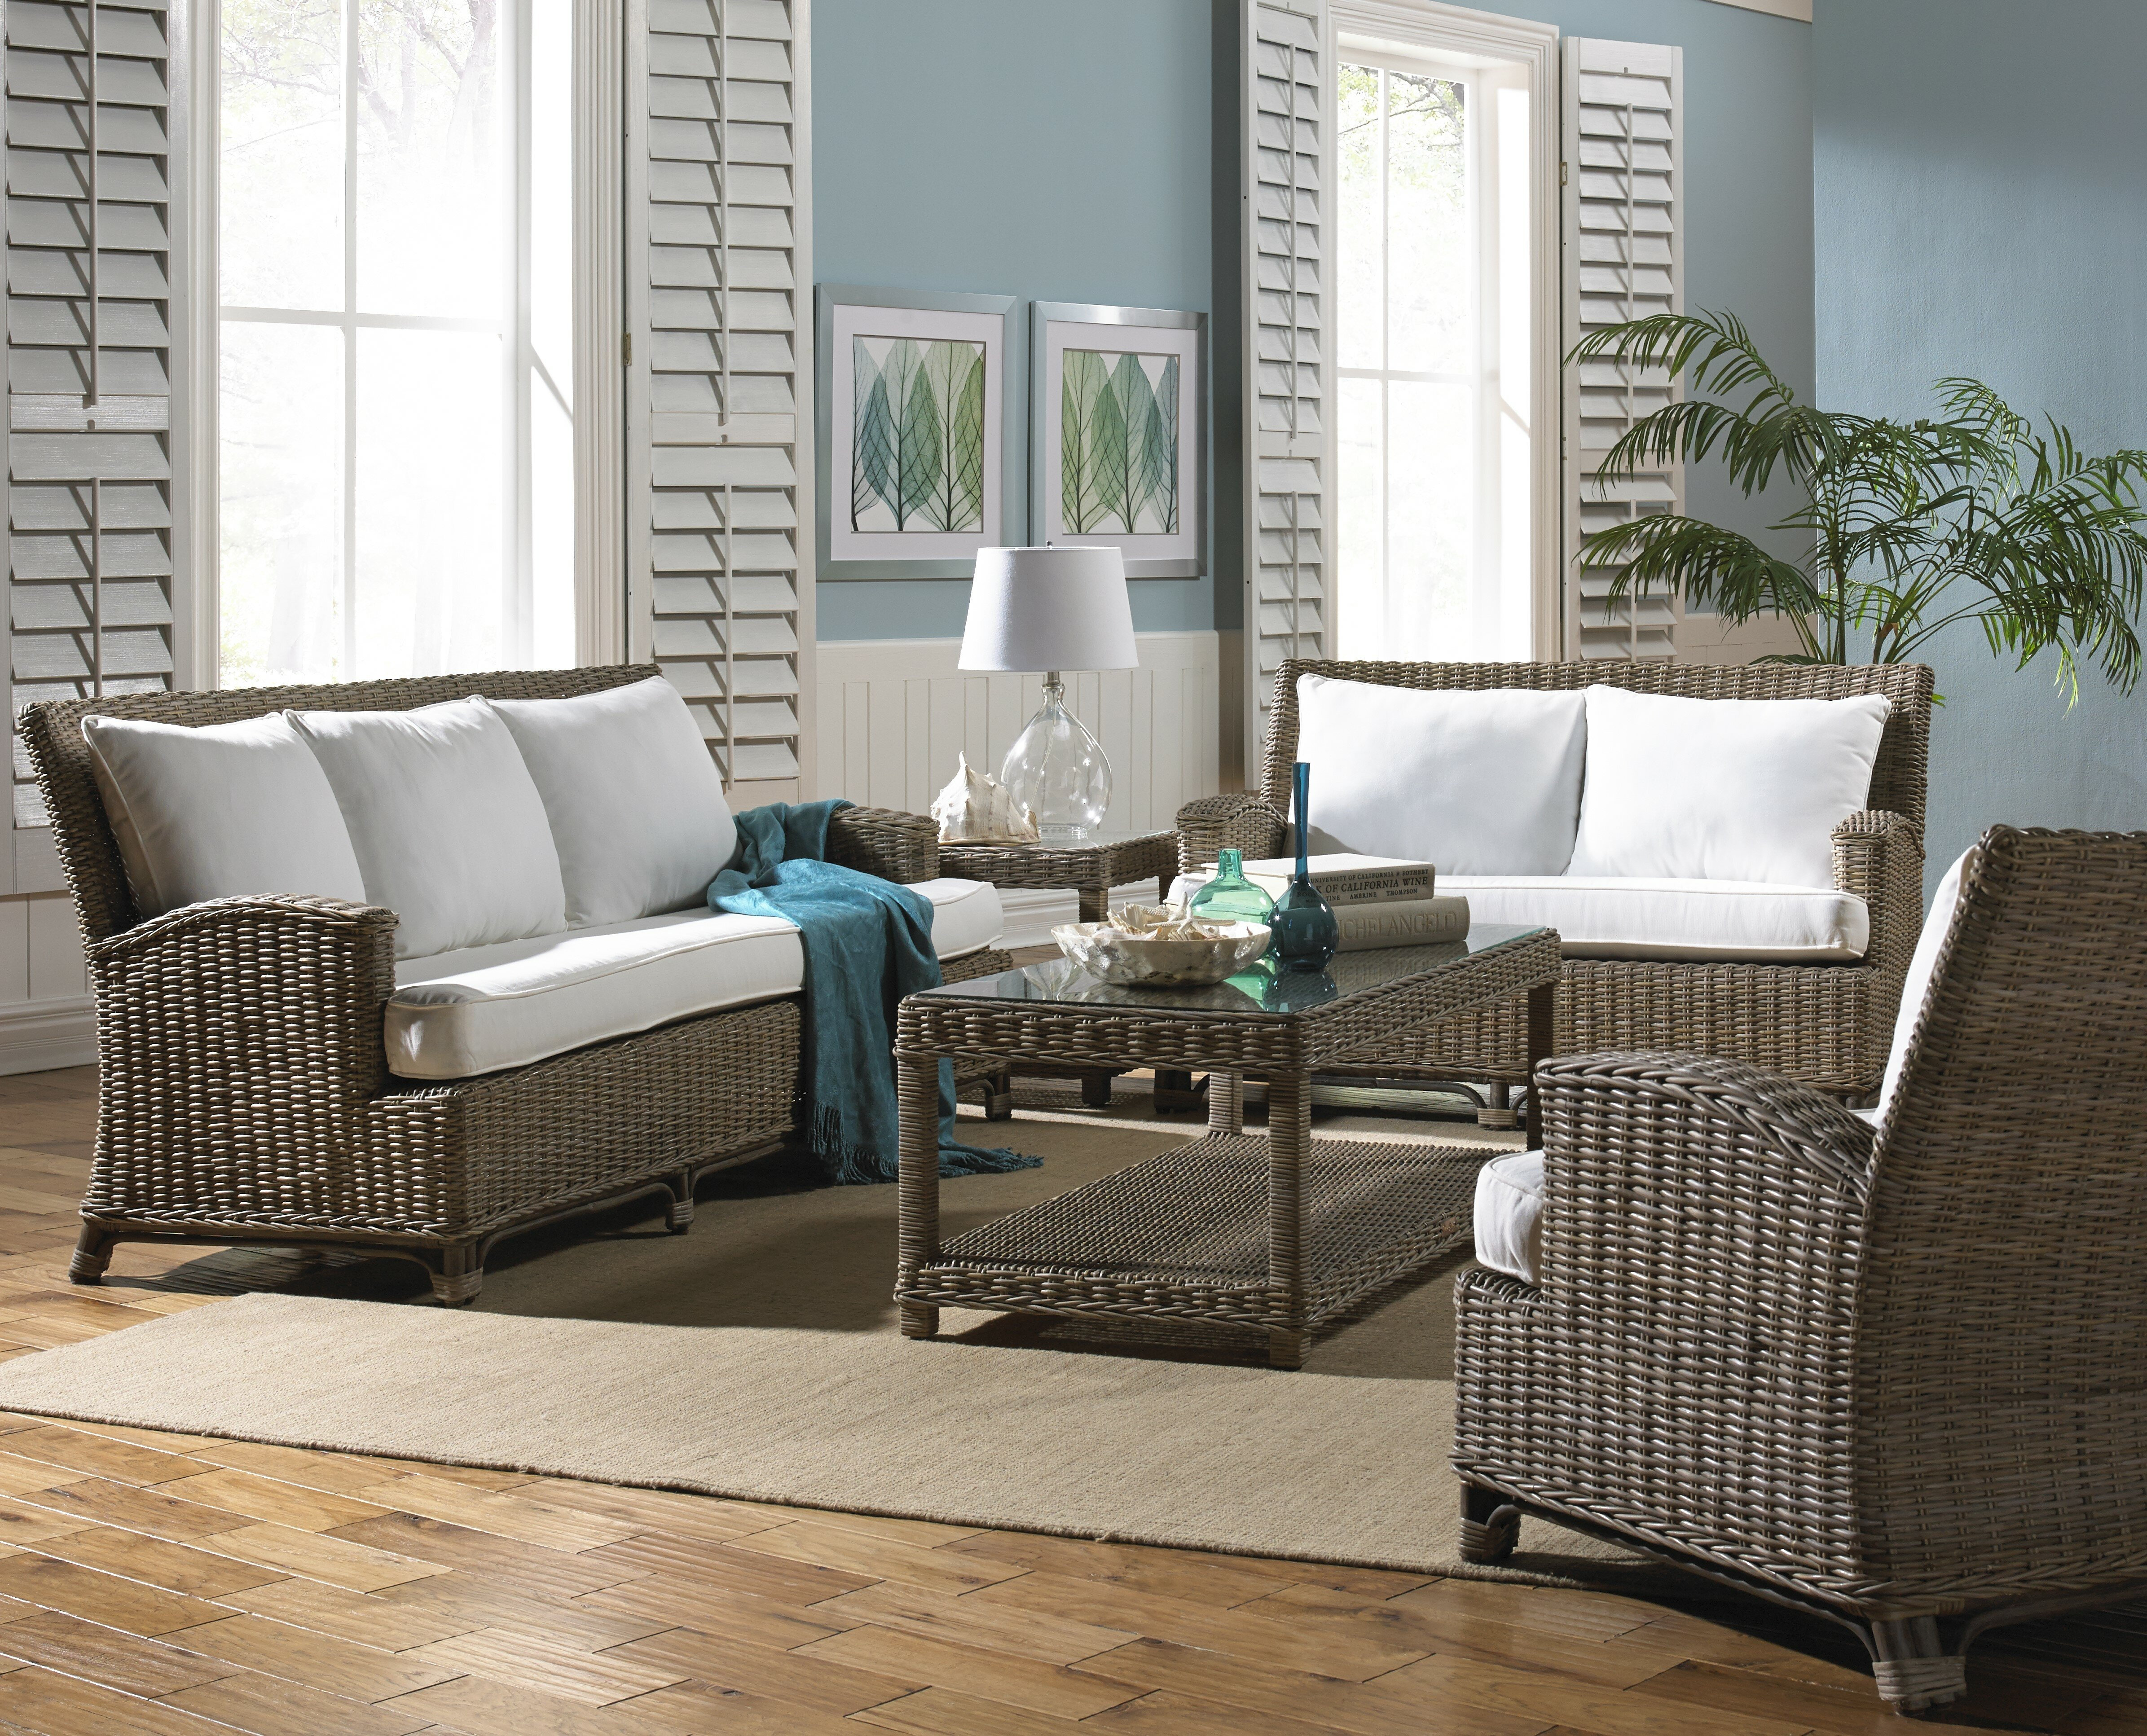 Panama Jack Sunroom Exuma 5 Piece Conservatory Living Room Set Reviews Wayfair